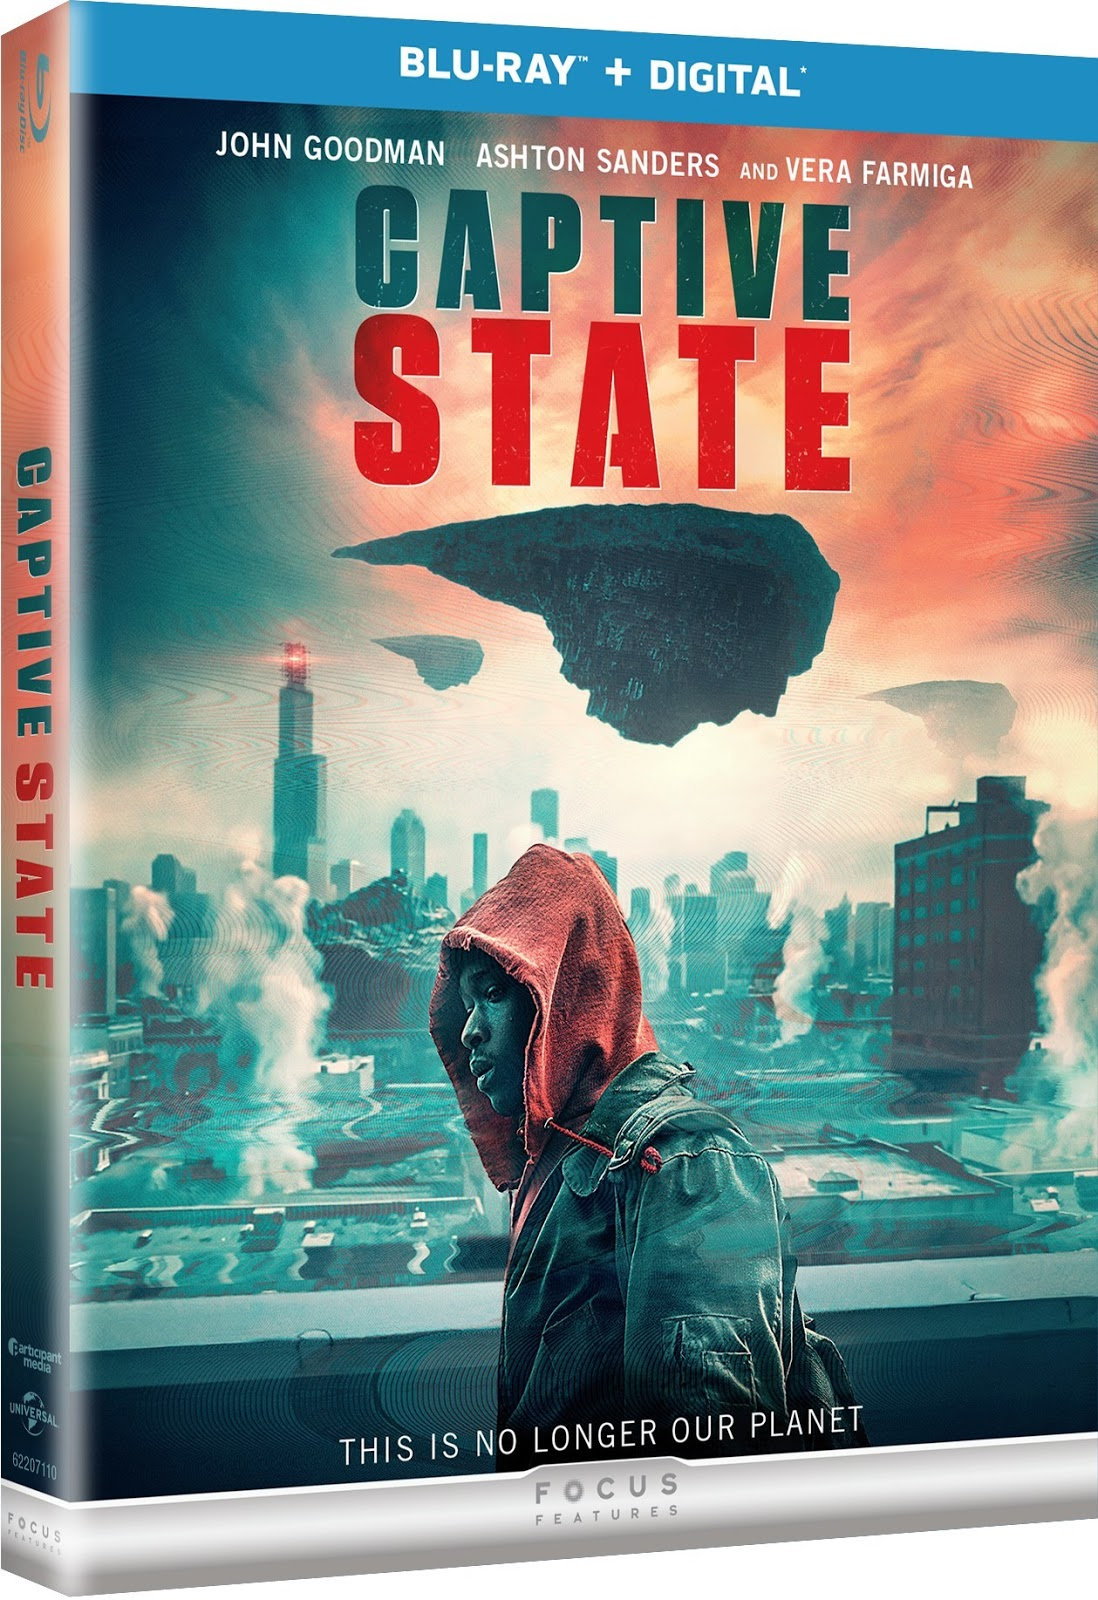 Blu-ray and DVD Date for Captive State (2019)